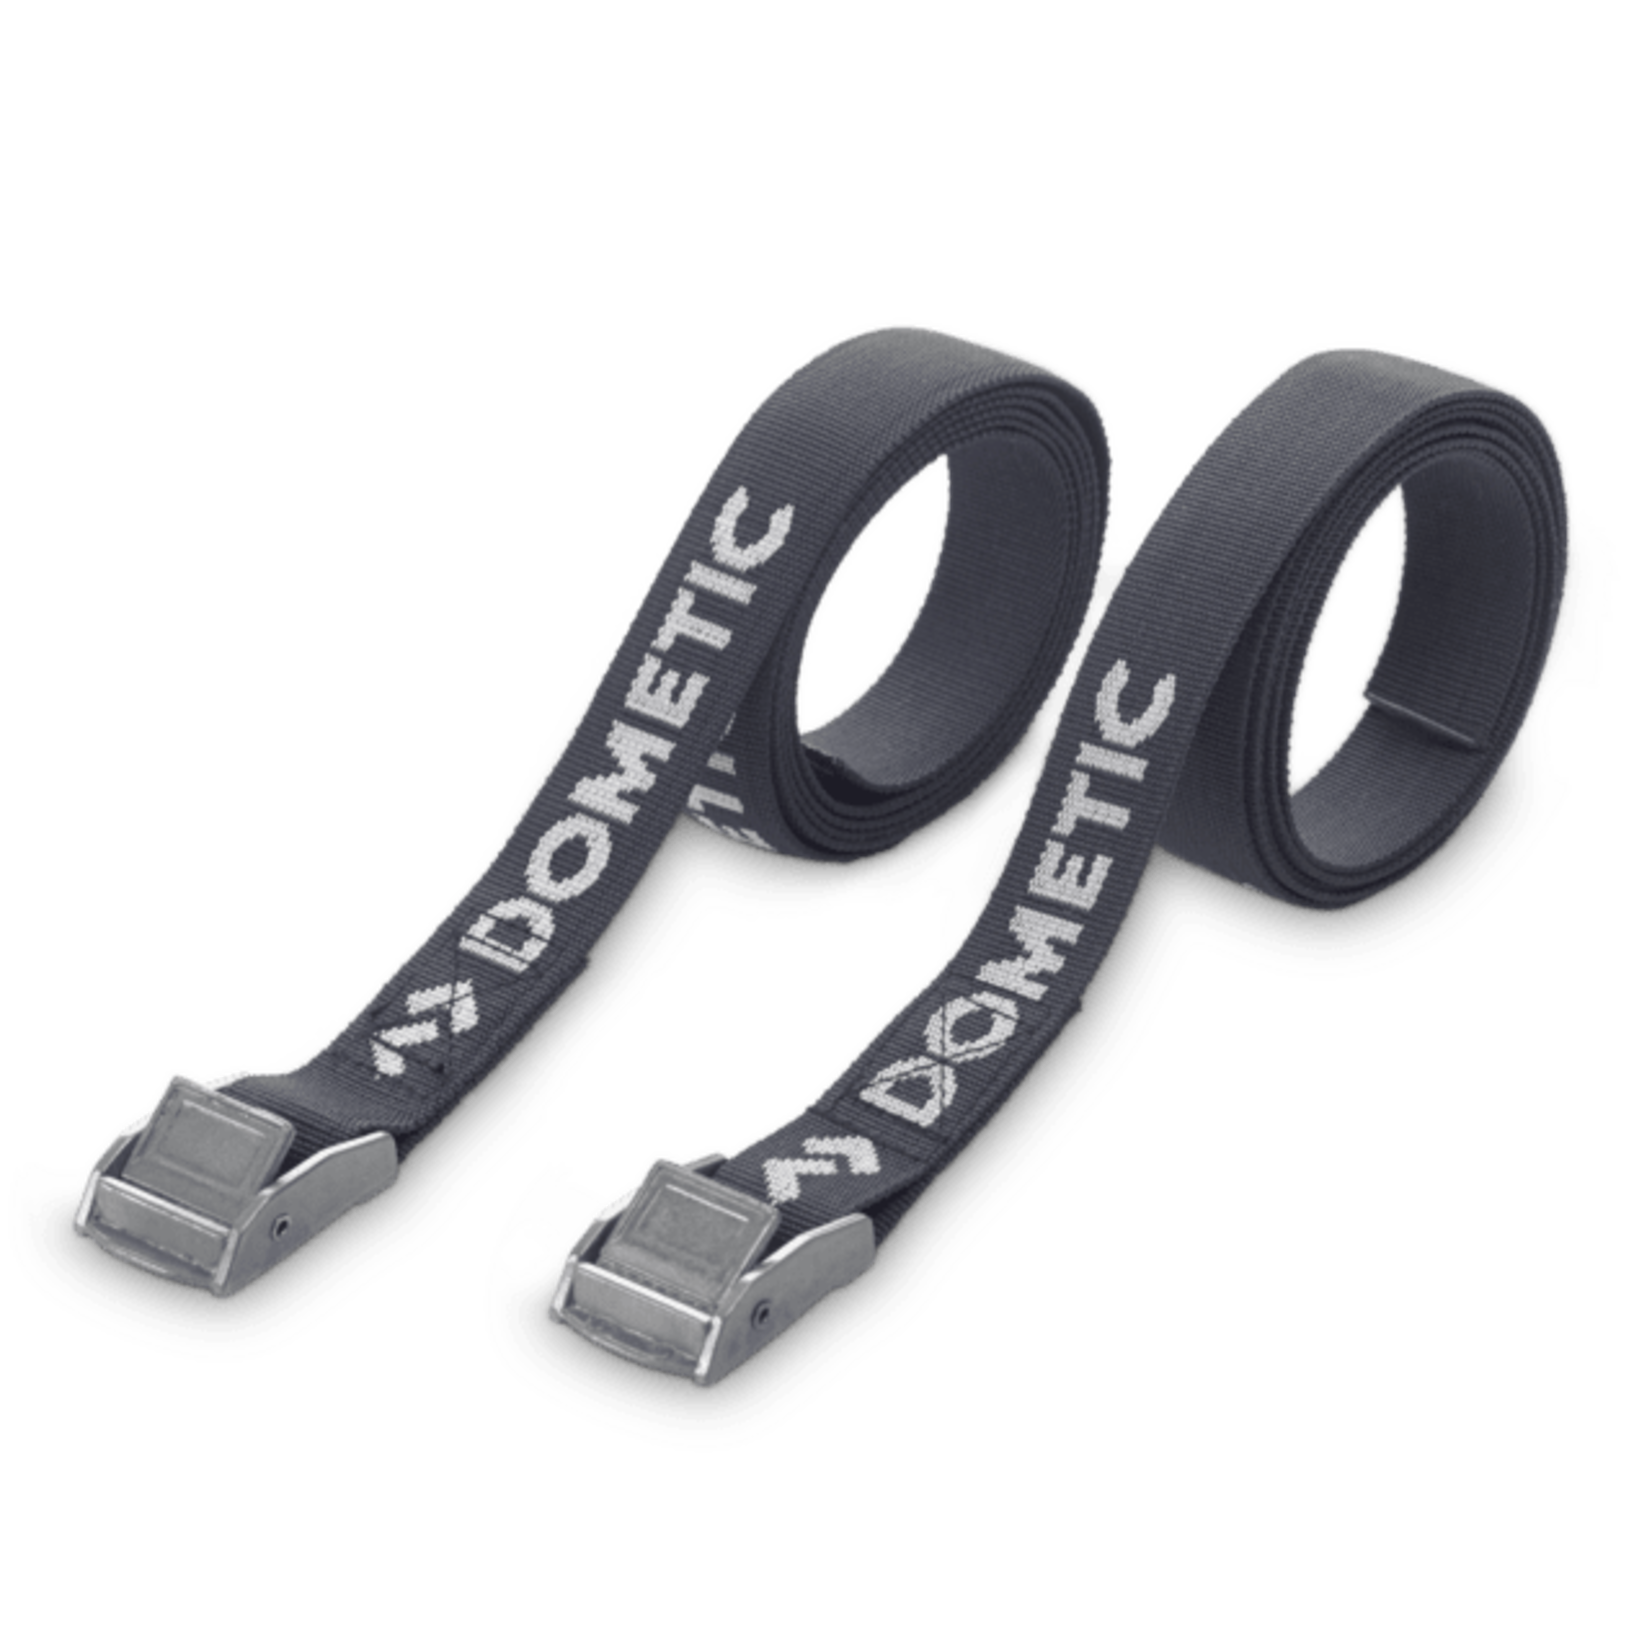 Dometic Dometic Strap Kit for Powered Coolers